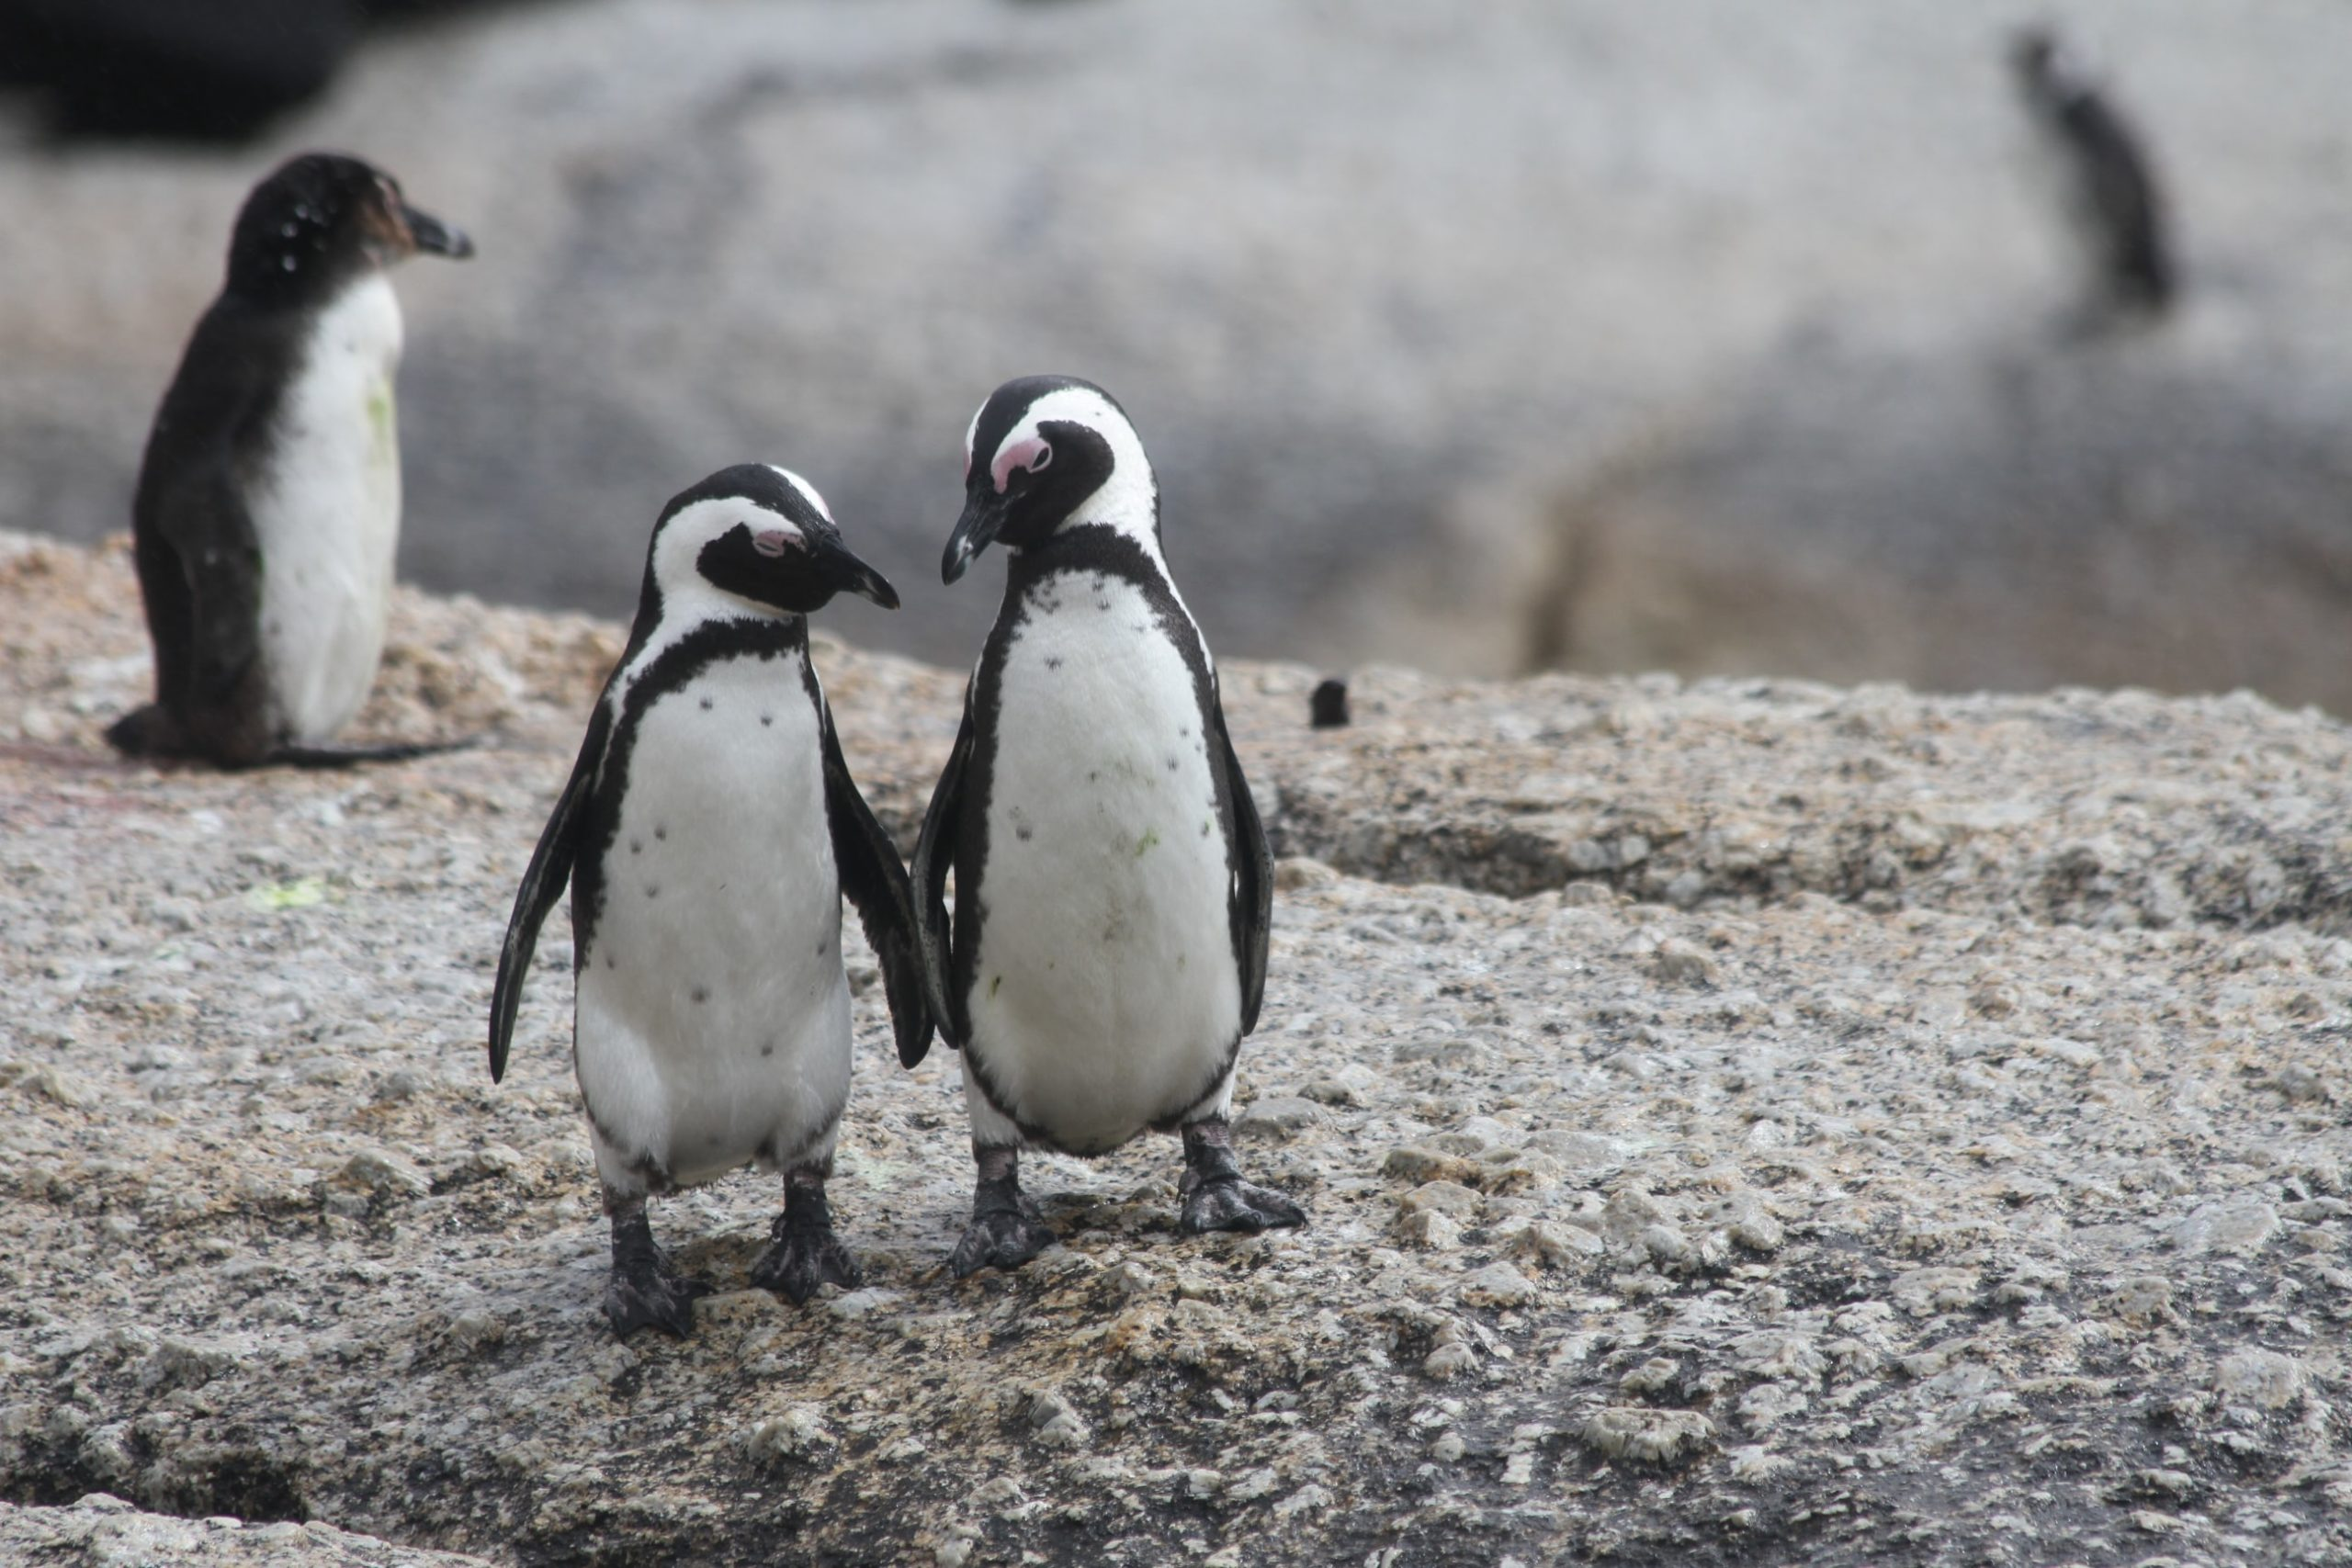 Today is National Penguin Day